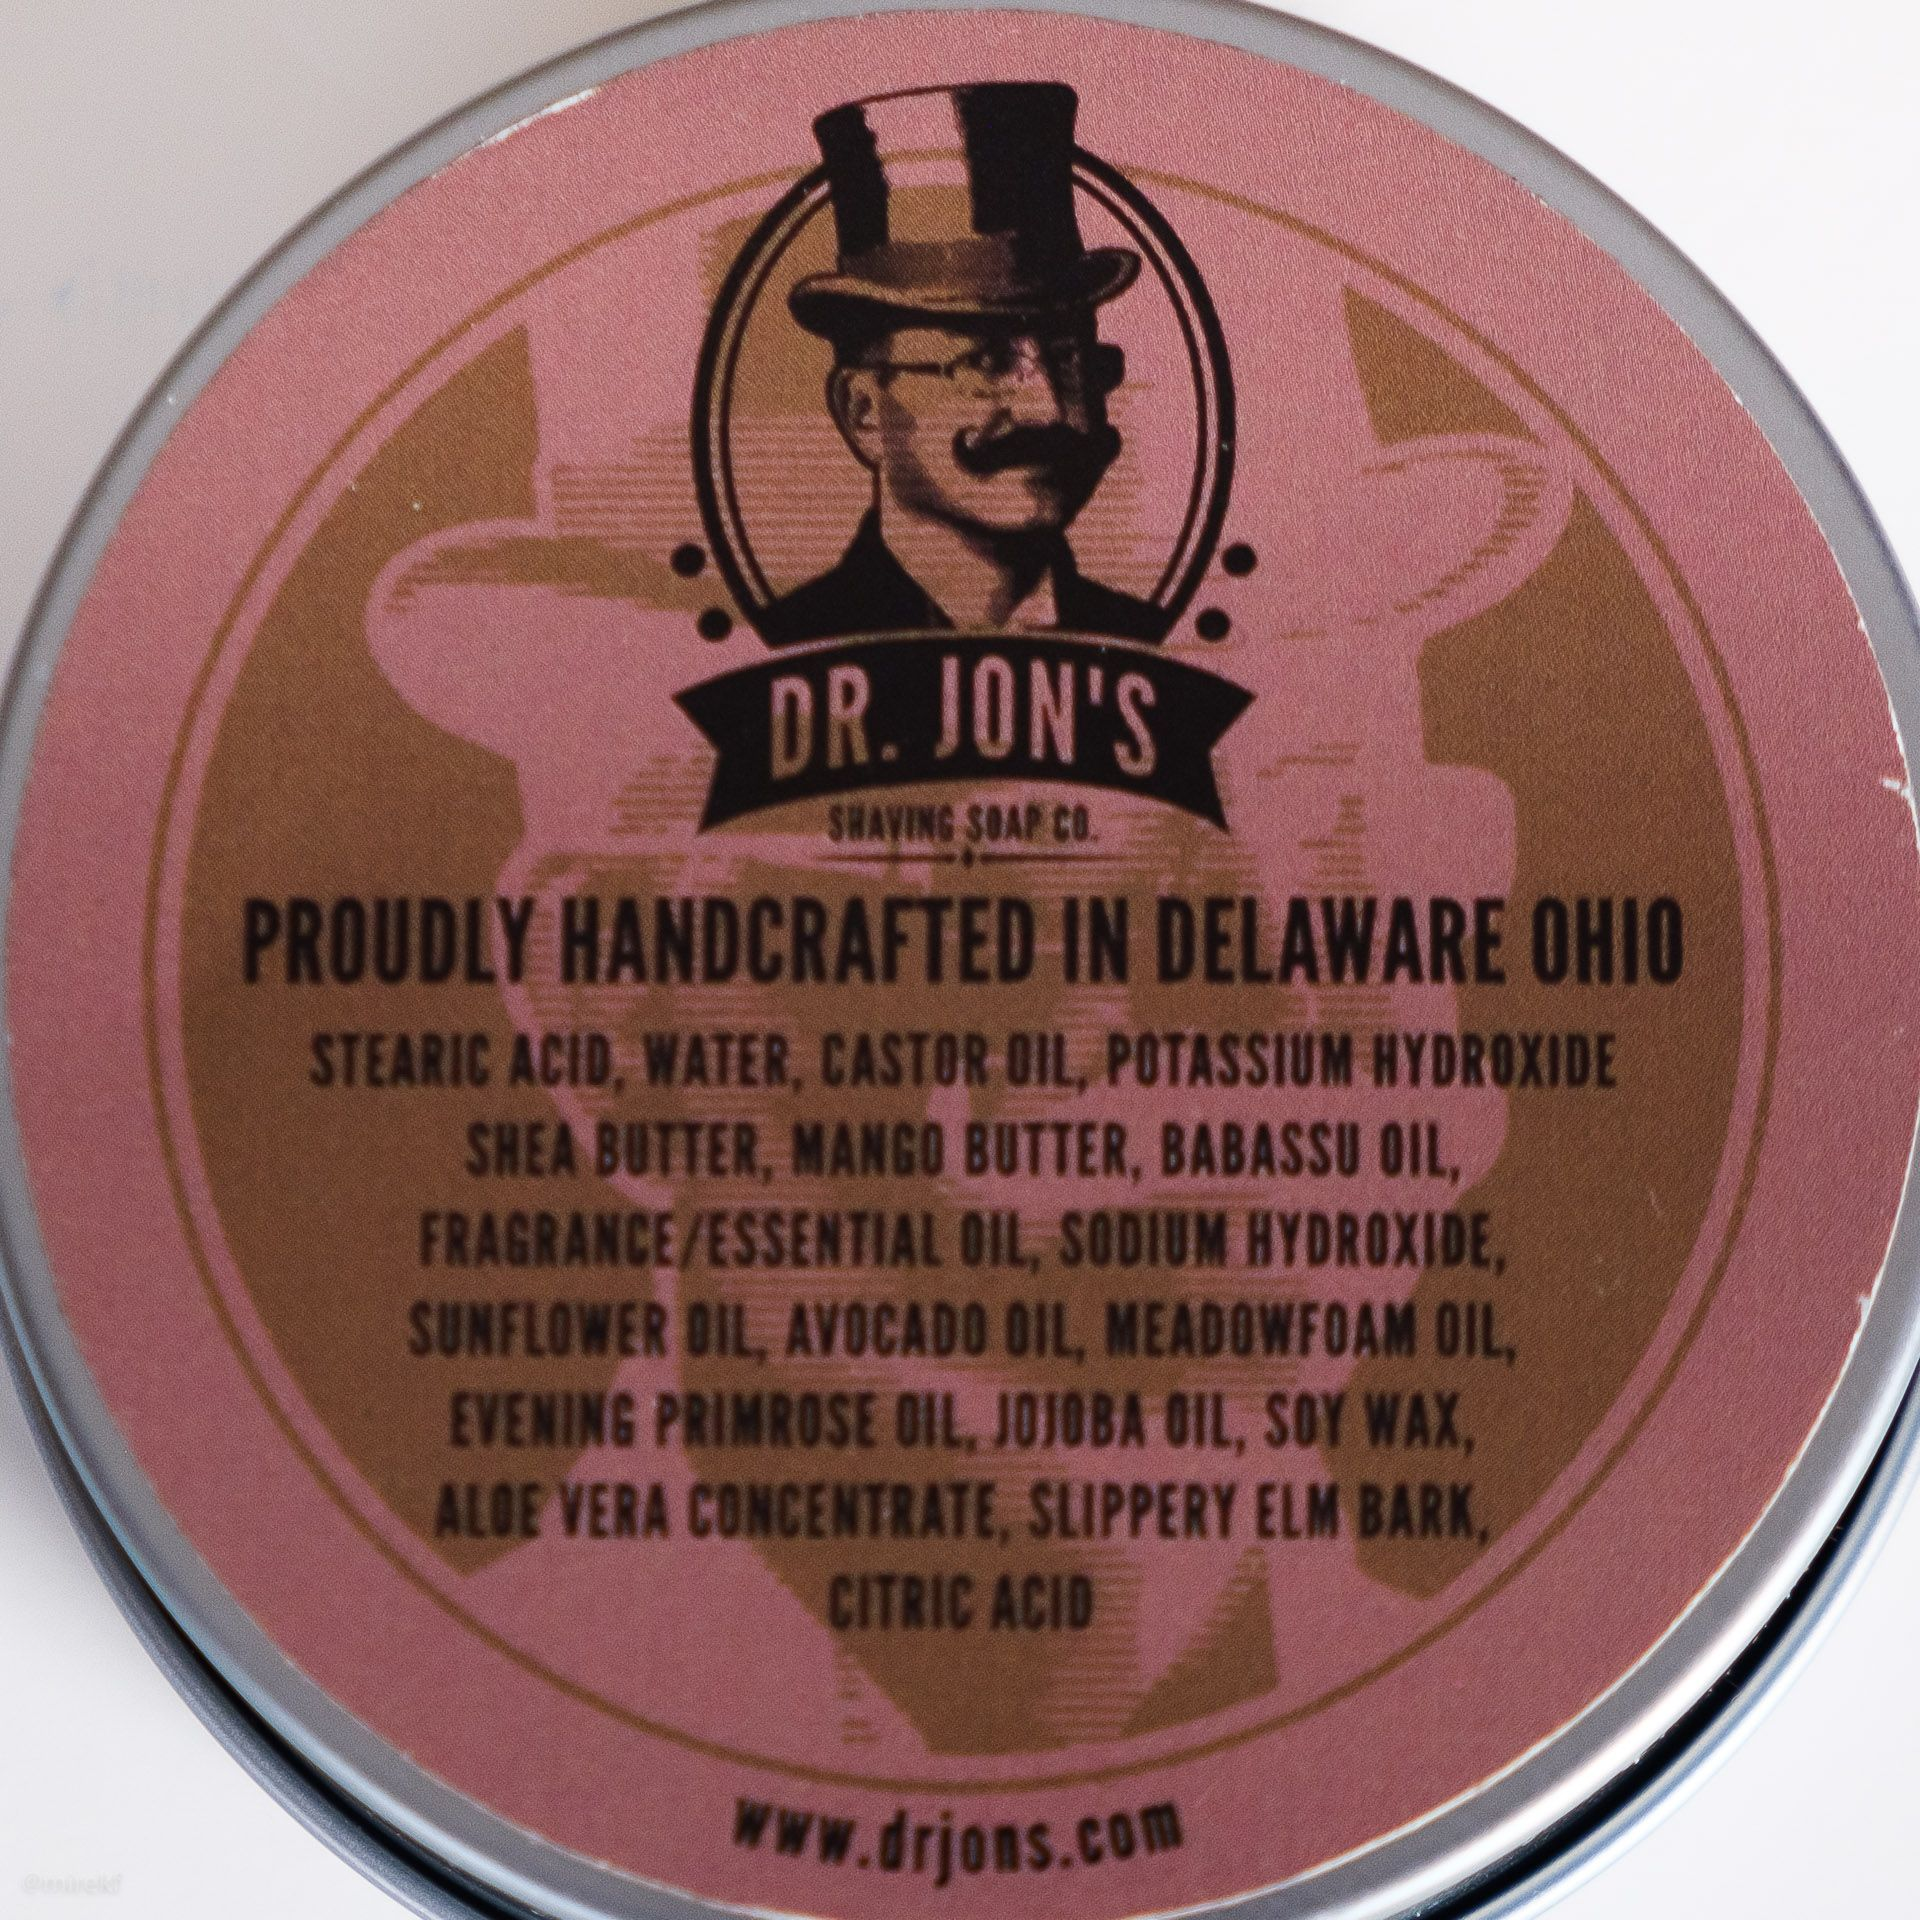 Skład mydła do golenia Dr. Jon's Anne Bonny Shaving Soap (INCI ingredients)